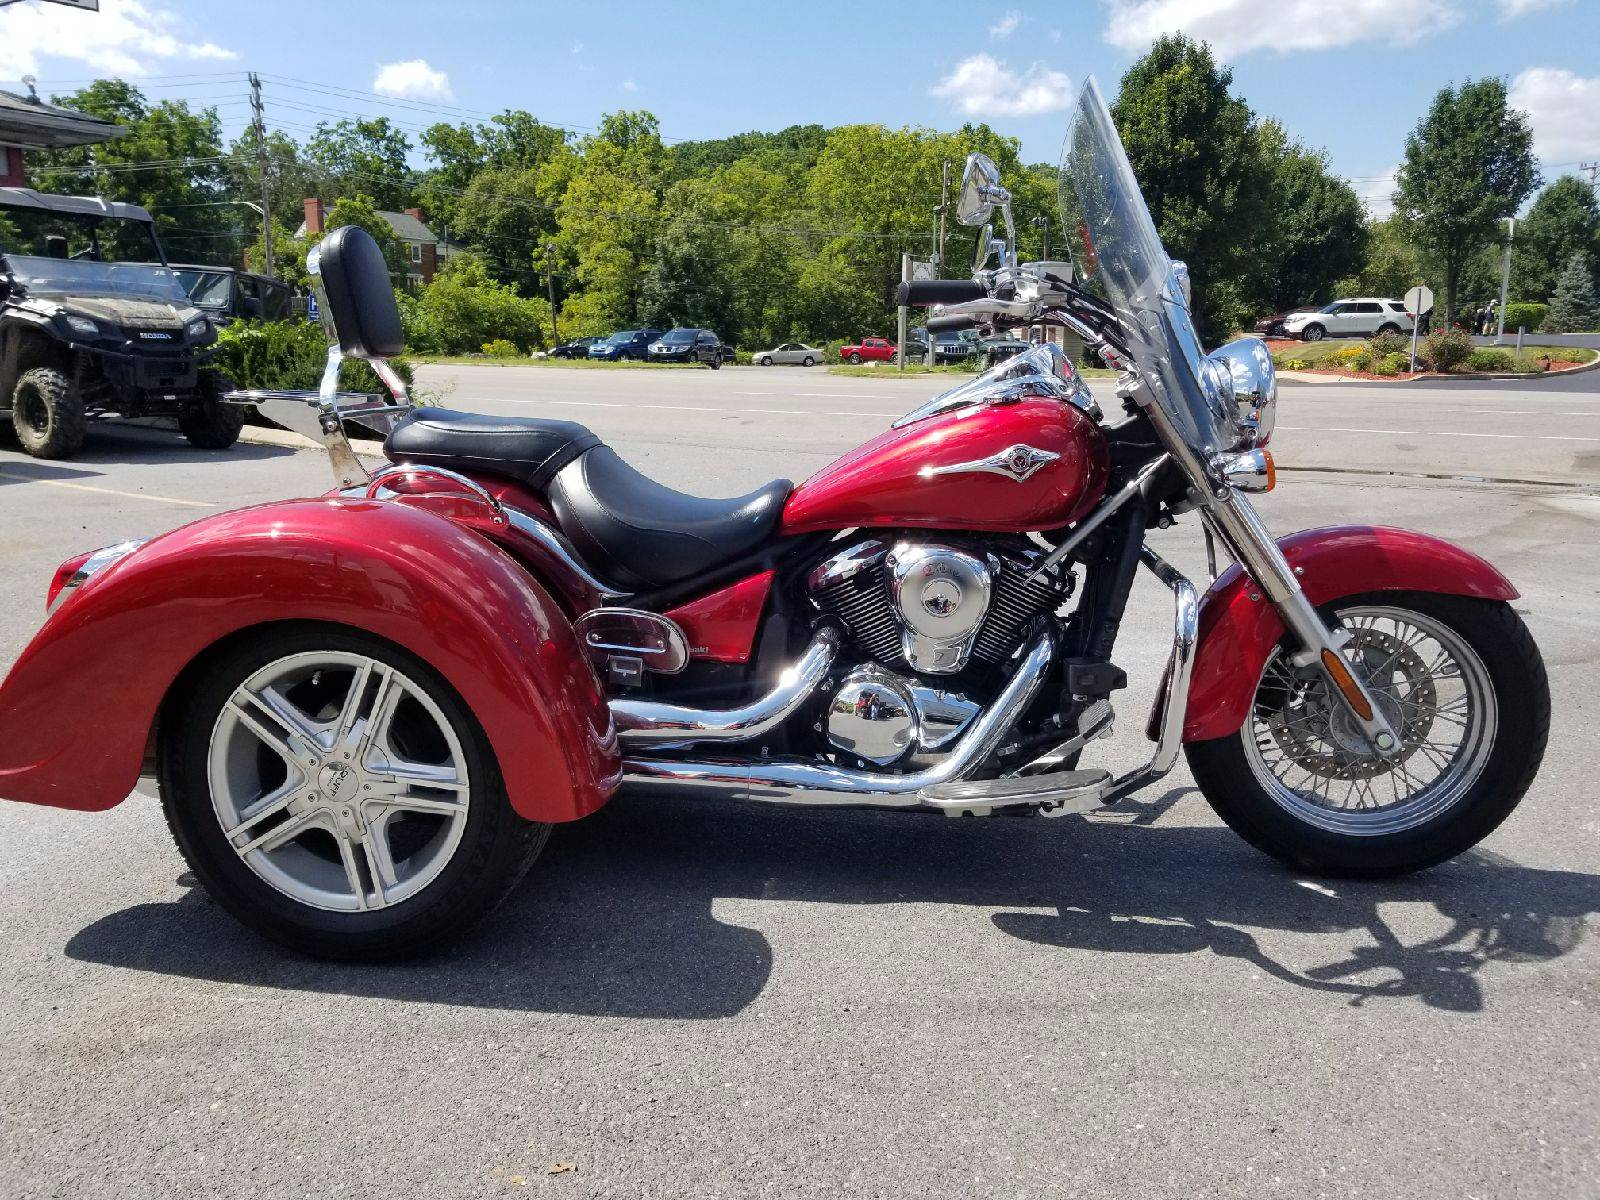 Used 2009 Kawasaki Vulcan® 900 Classic Motorcycles in State College, PA